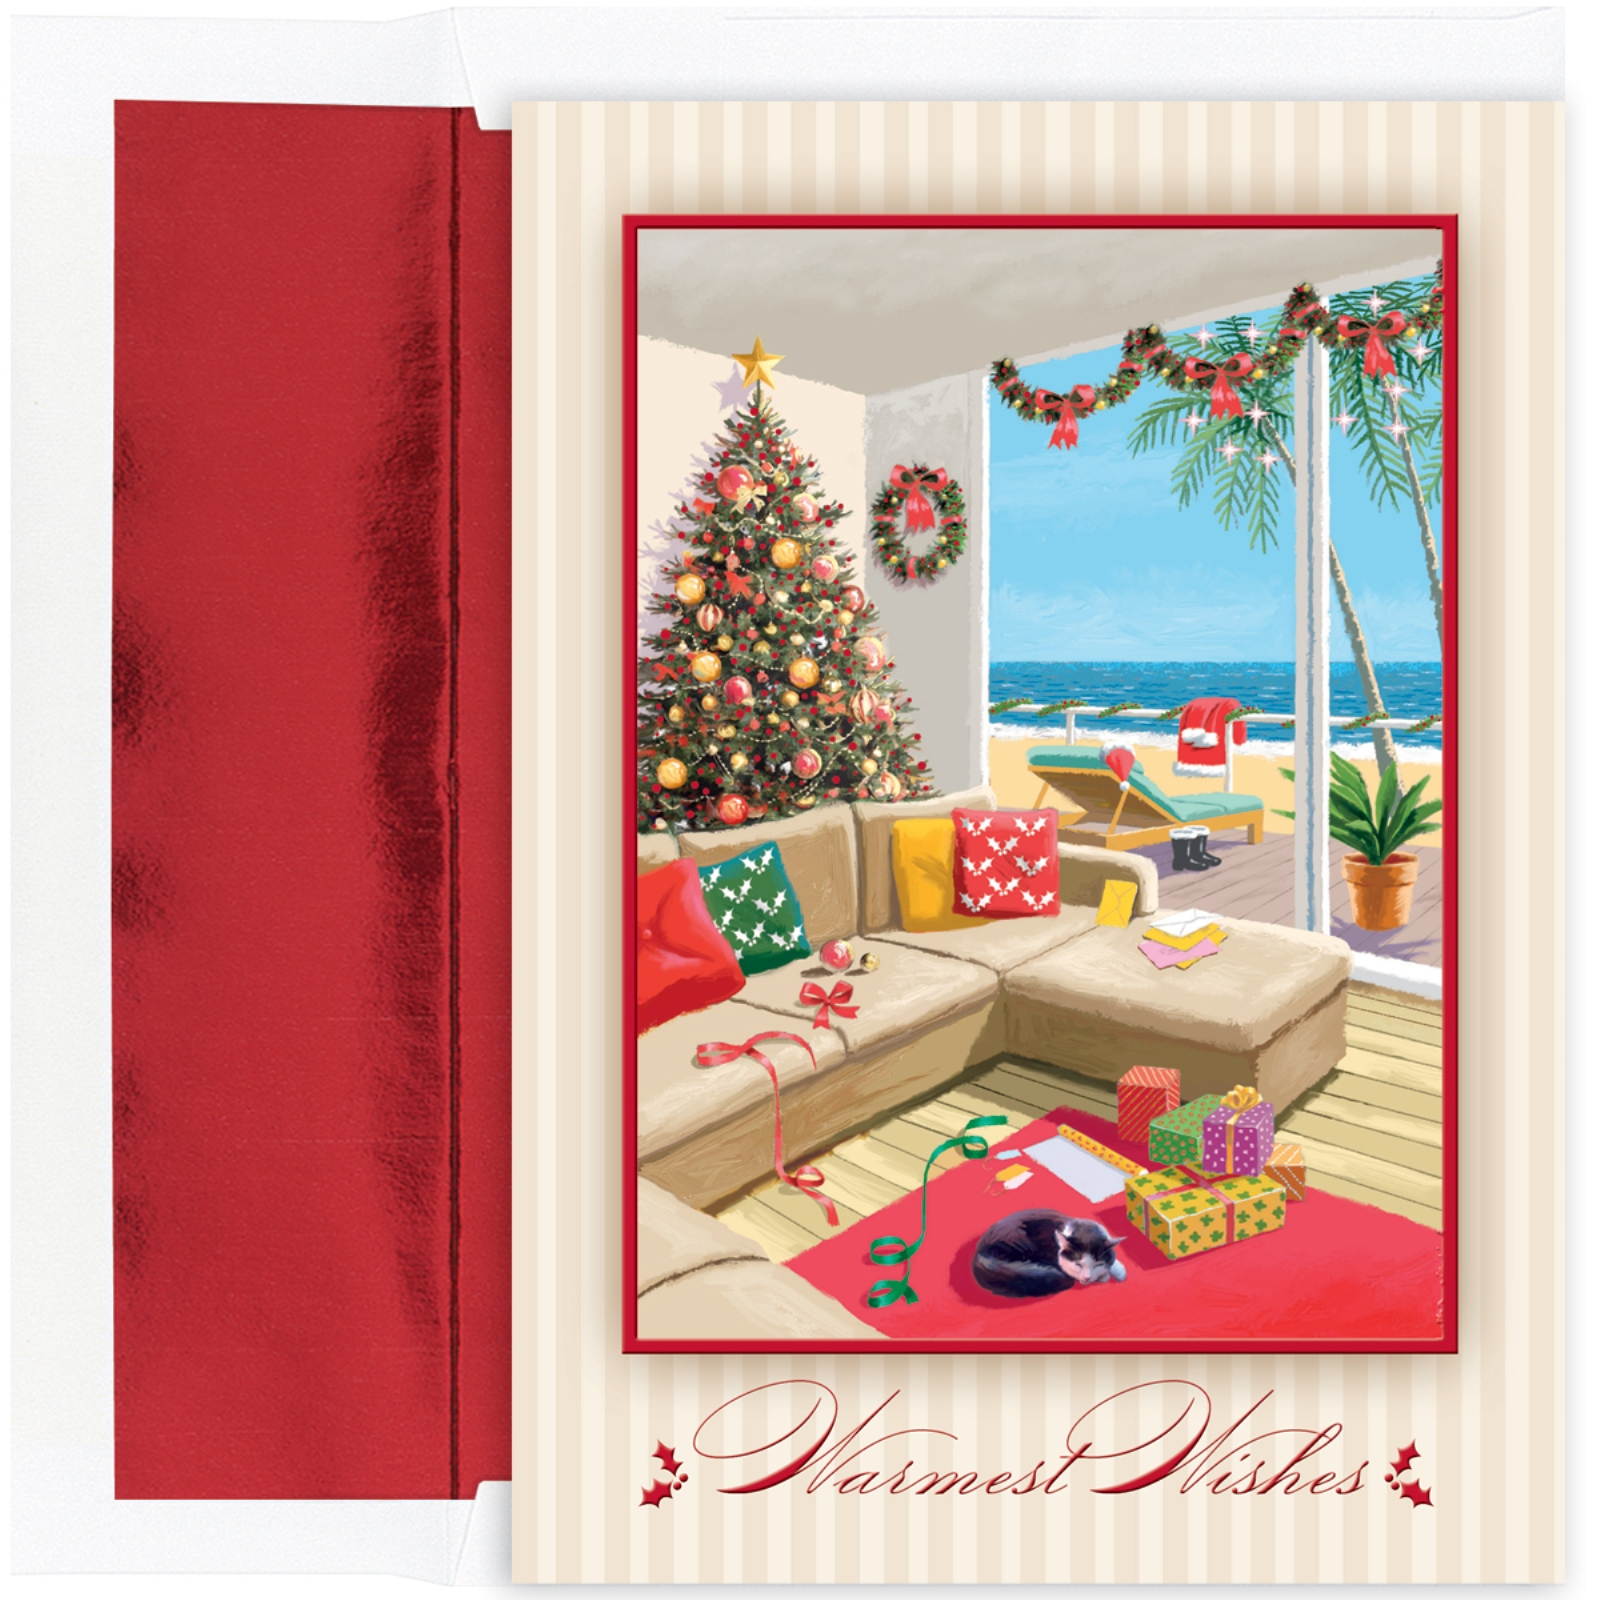 Warmest Wishes Christmas Morning at the Beach 18 Boxed Christmas Cards